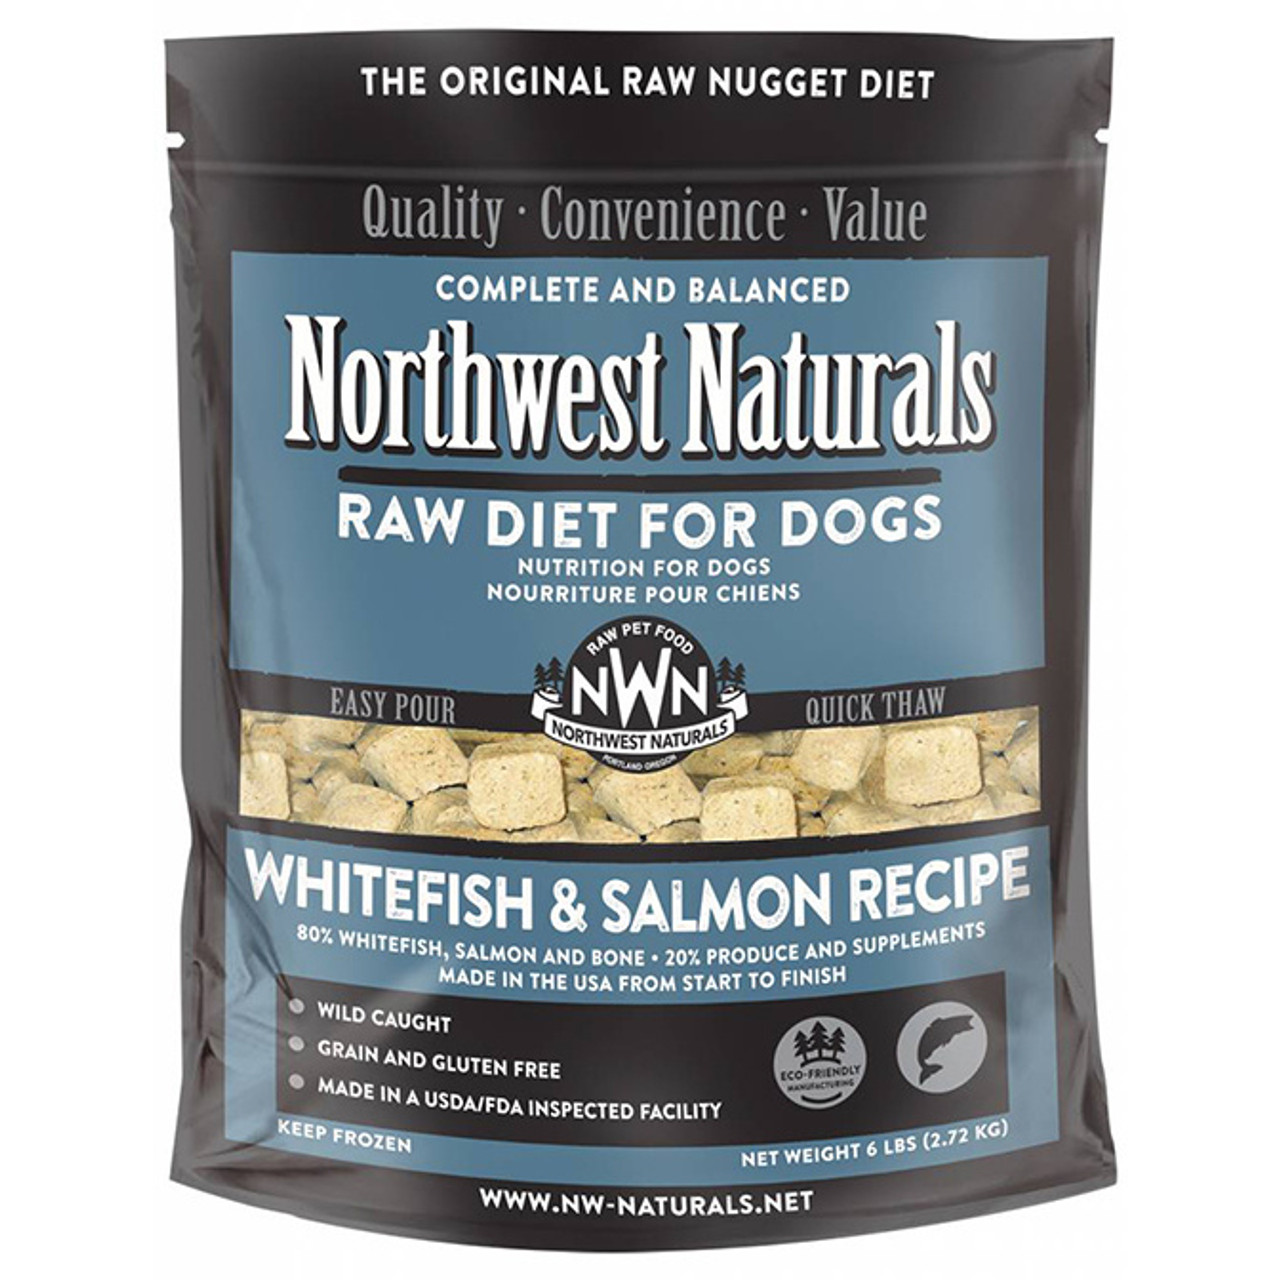 A 6 pound resealable, easy-carry bag holds IQF (Individually Quick Frozen) nuggets which weigh approximately .20 oz each, 80 to the pound. The formulas are ground, formed and then quick frozen at -30° for 10 minutes. Open the bag and pour the proper feeding amount into your dogs bowl. The small nuggets will thaw quickly and are small enough for the tiniest dogs or puppies. The pourable feature means that you never handle the raw product and you place the portion you do not use back into the freezer.